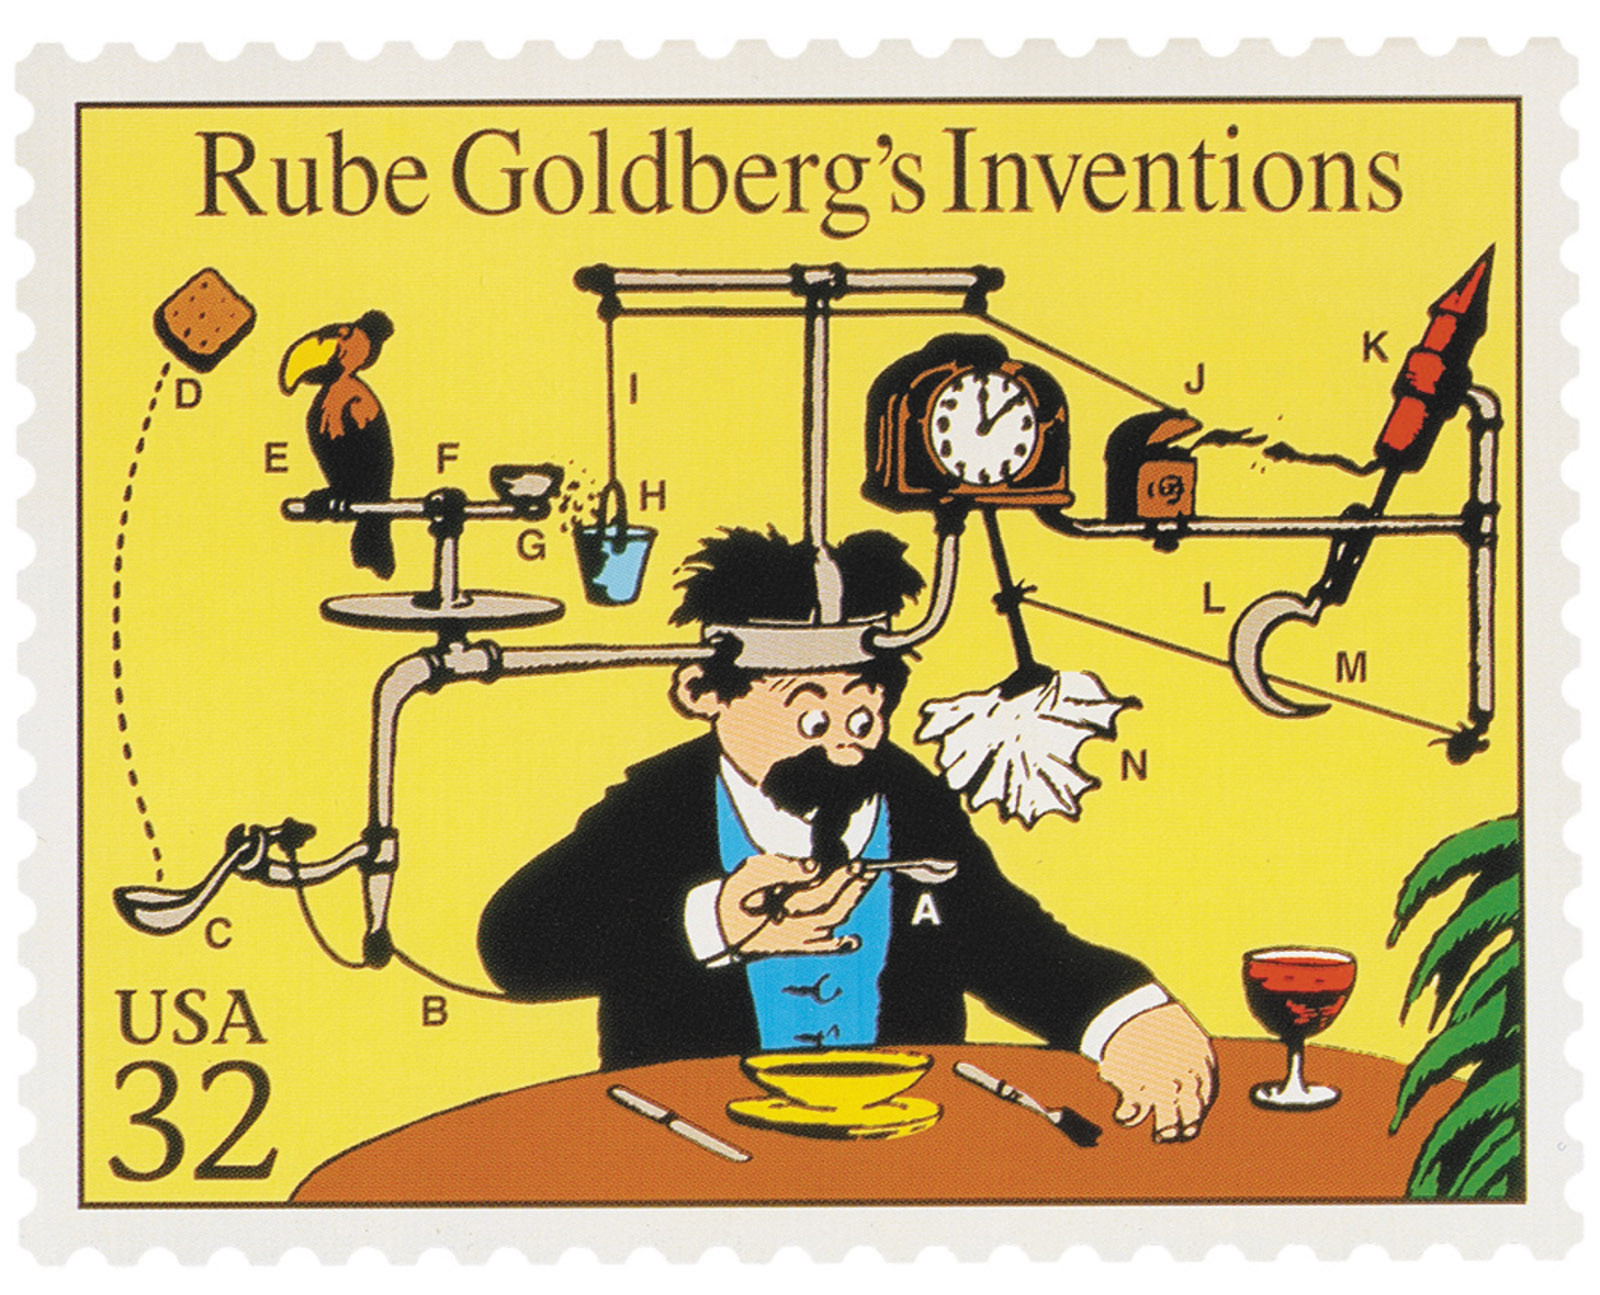 A 1995 US postage stamp adapted from artwork by Rube Goldberg, September 26, 1931